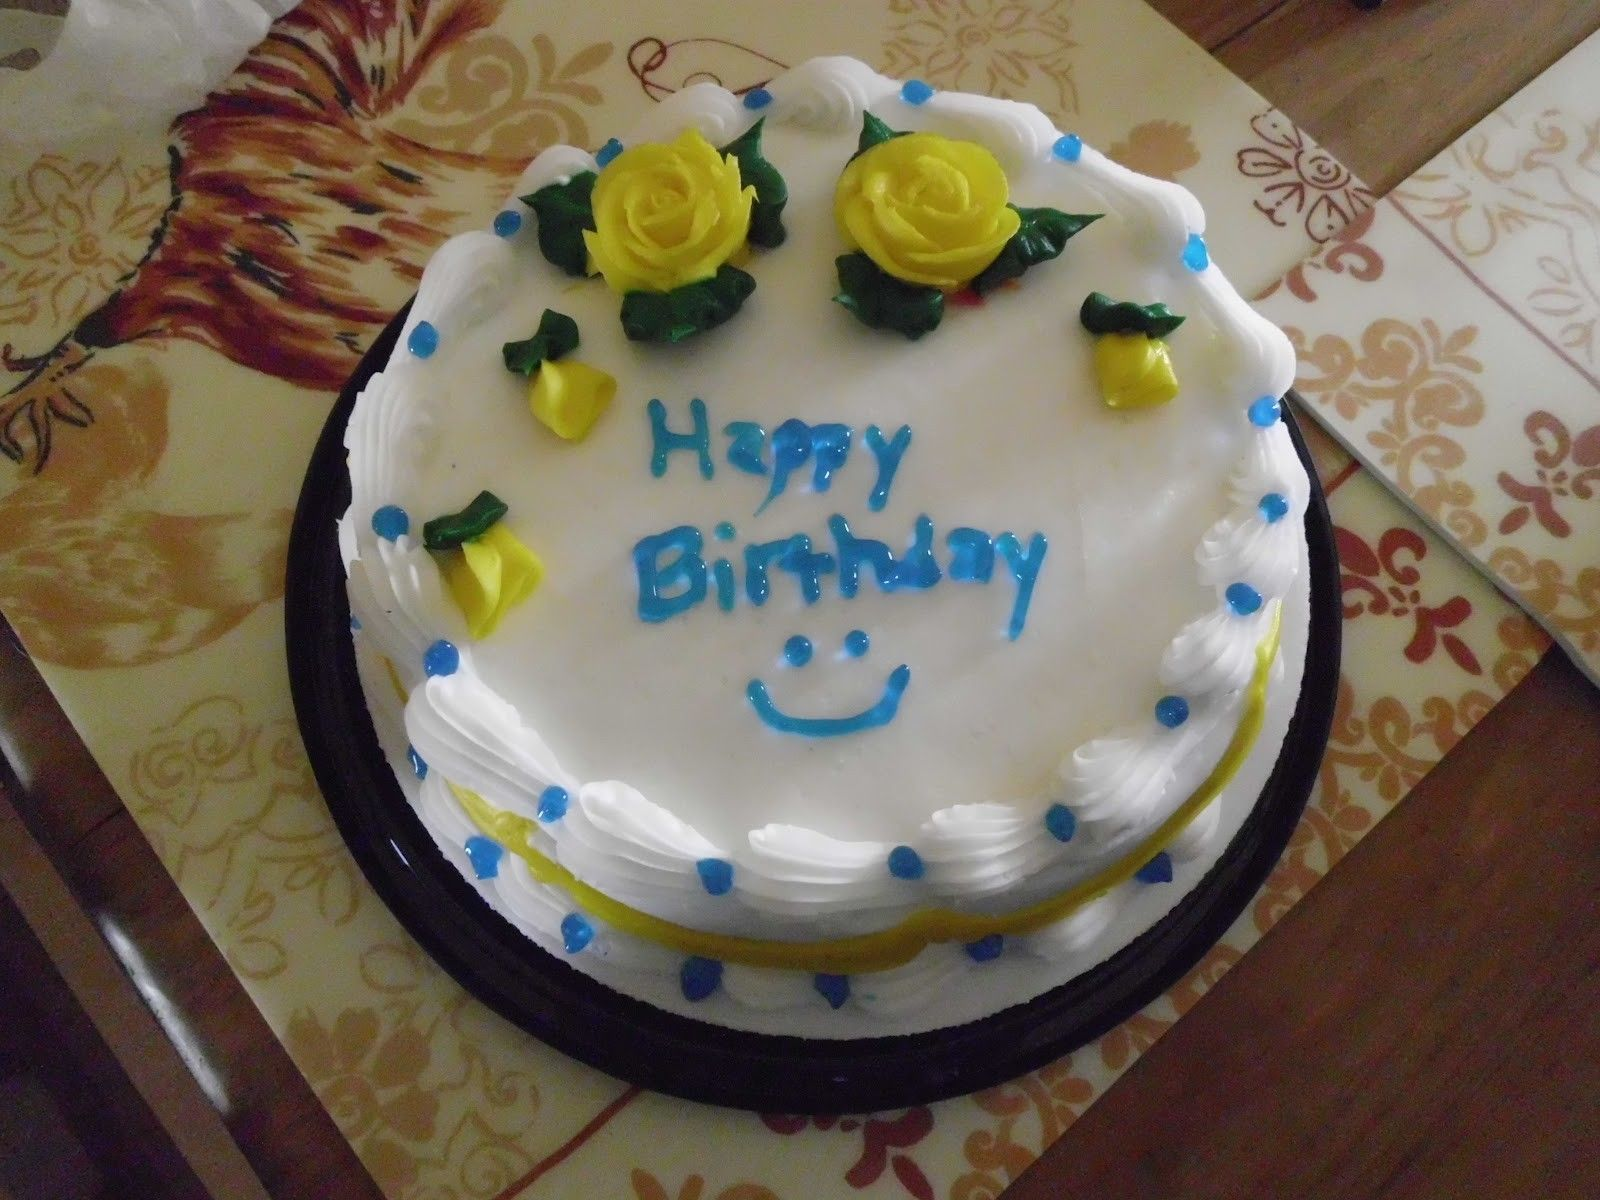 Birthday Cake With Name Edit ~ Birthday cake pics with name edit happy birthday